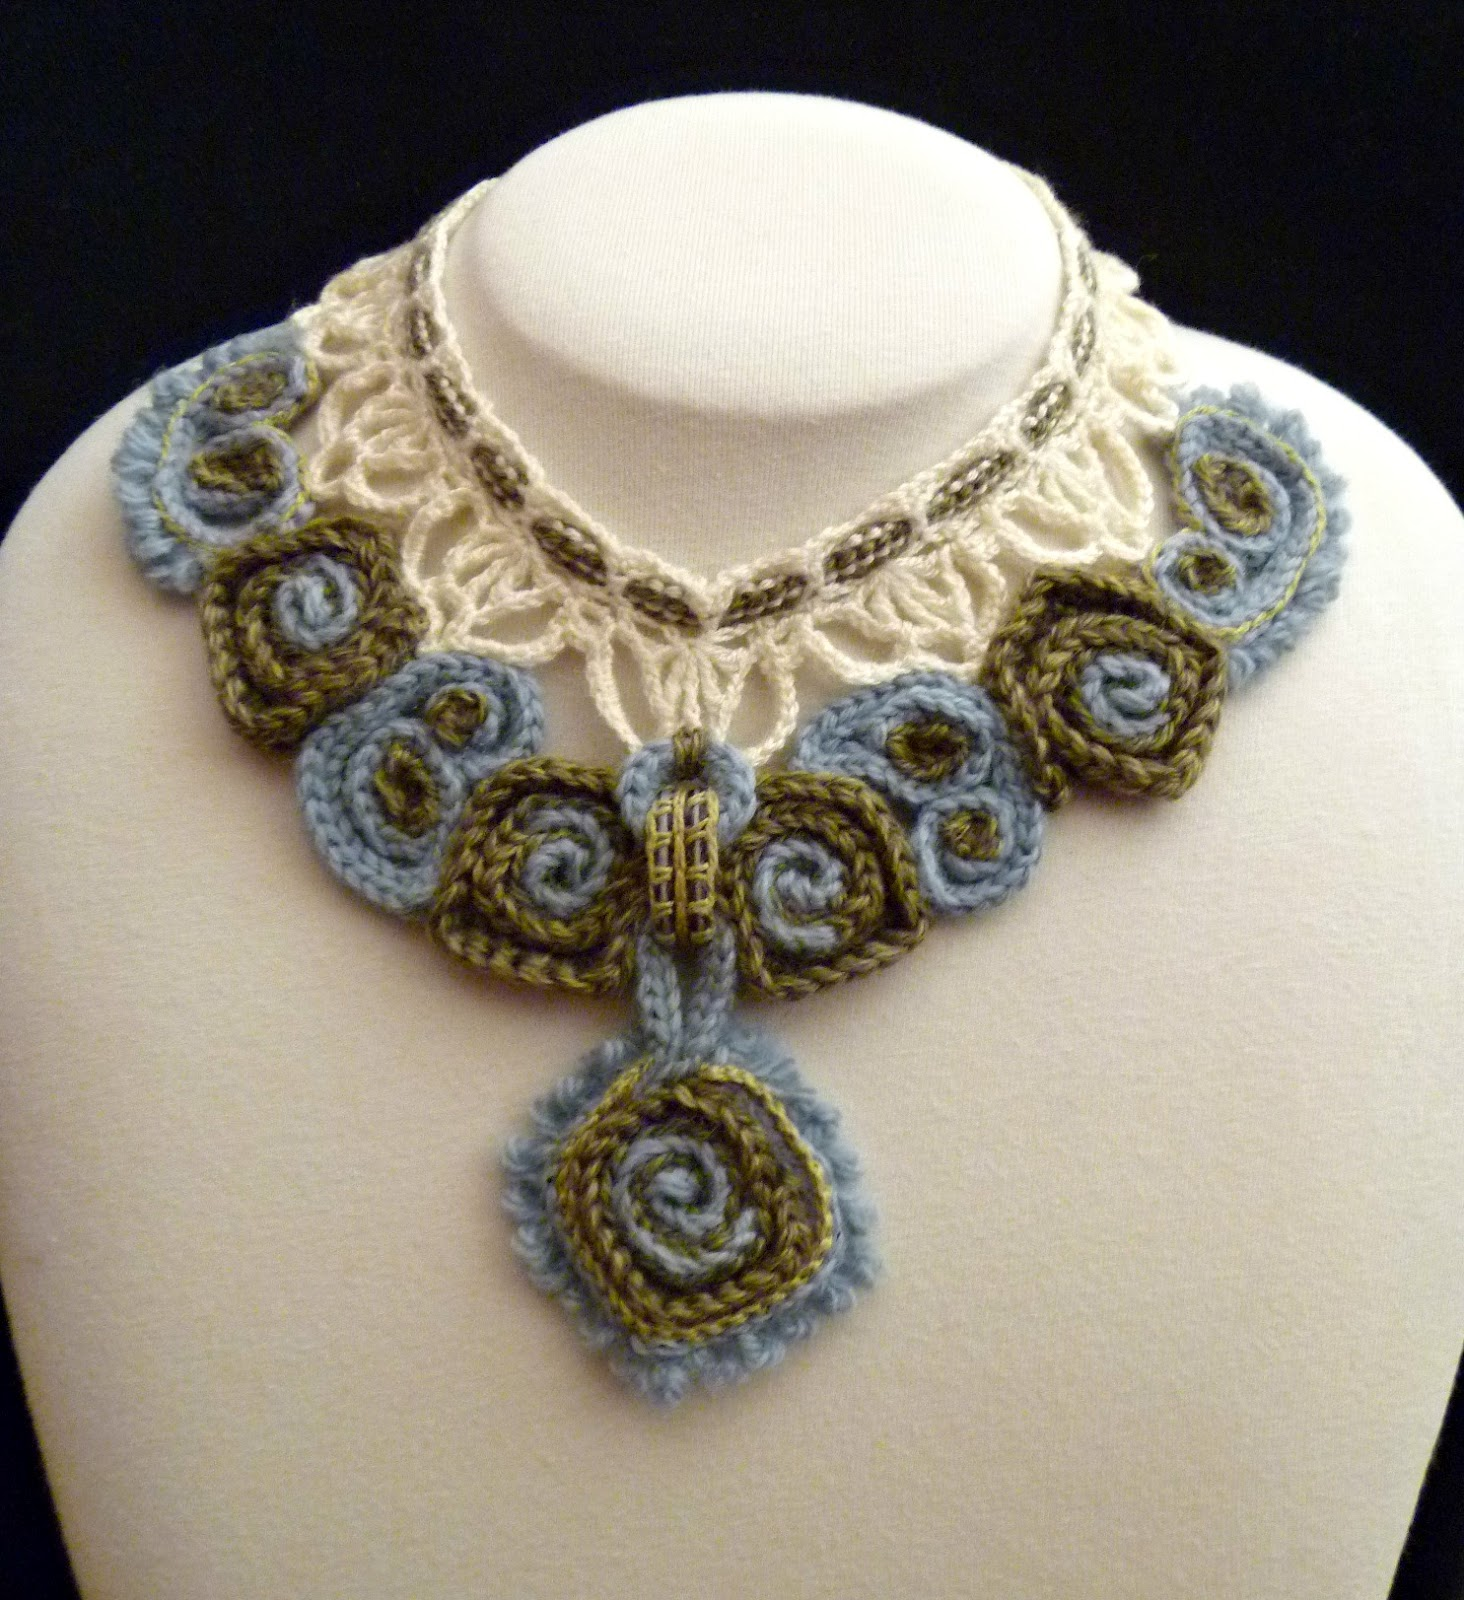 Crochet Necklace : Stitch Story: My Prize Winning Marseille Crochet Necklace